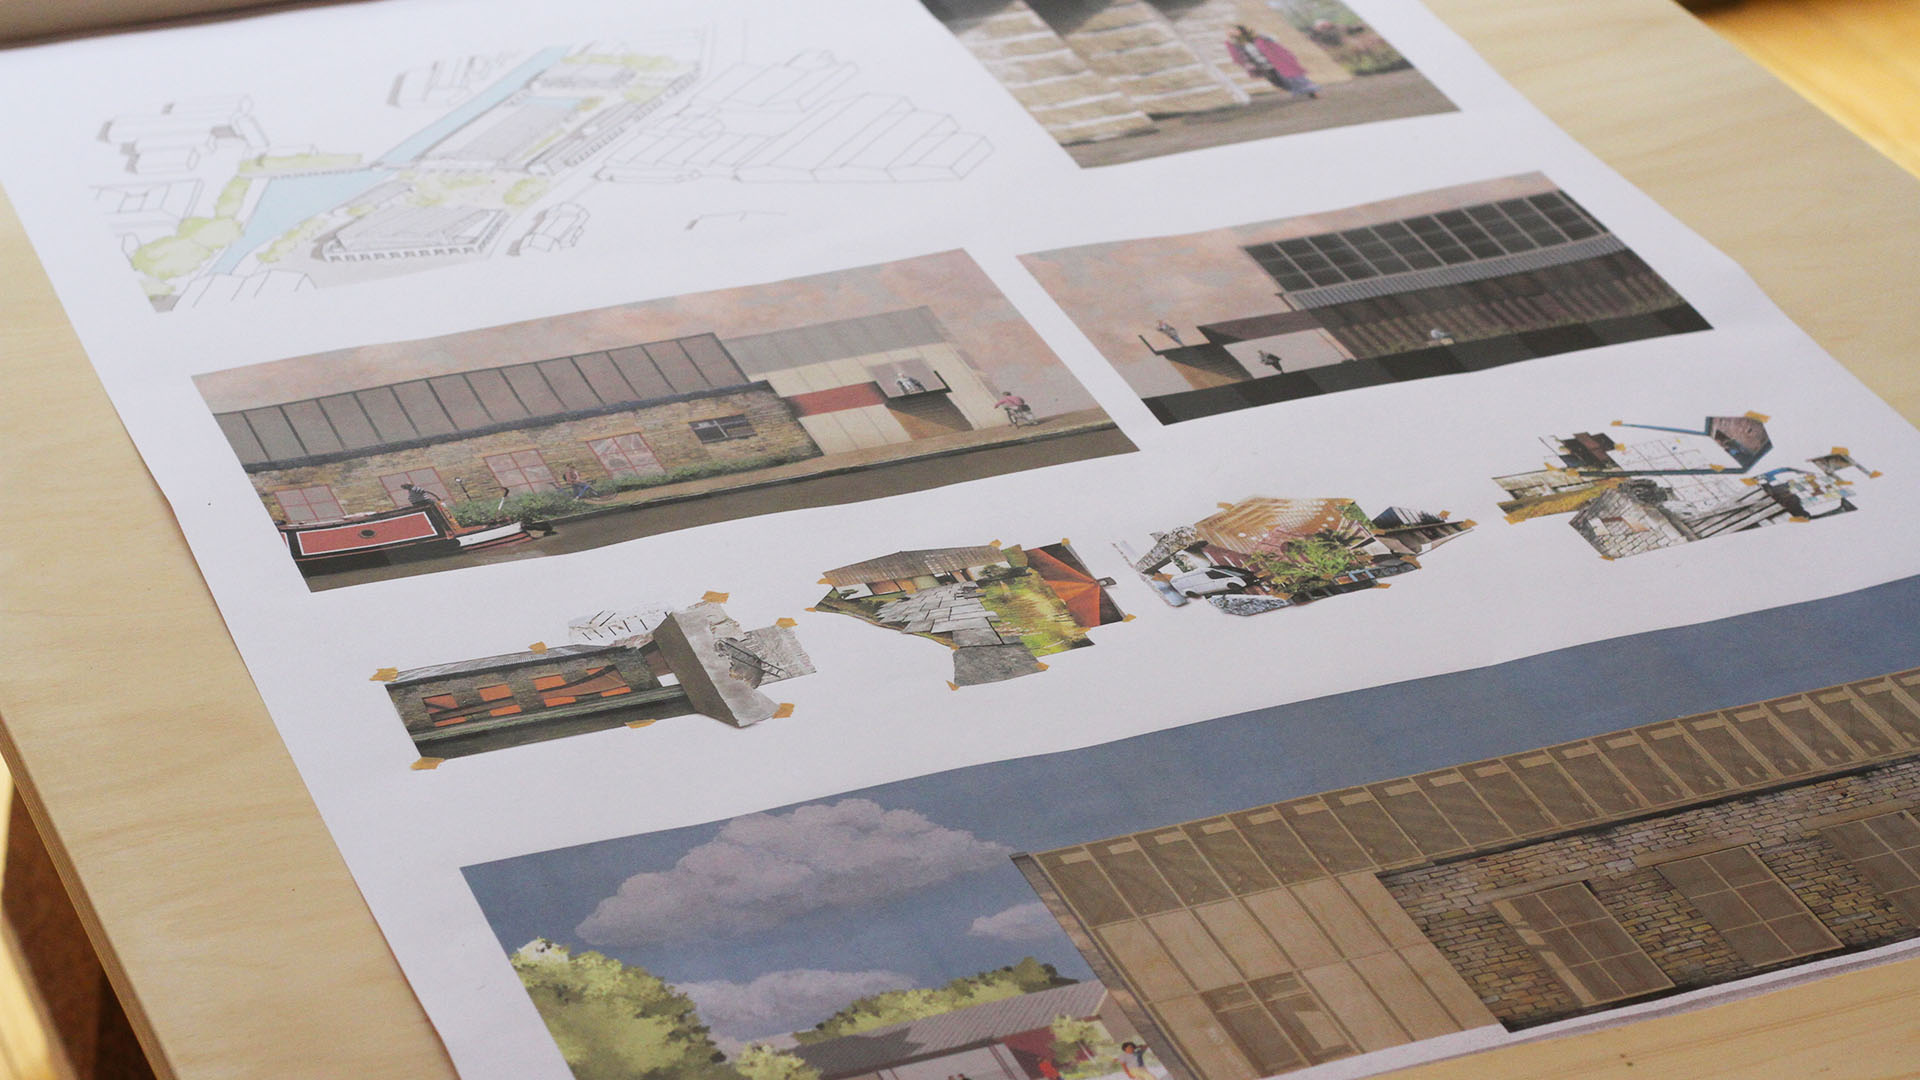 Designs by CAT architecture student